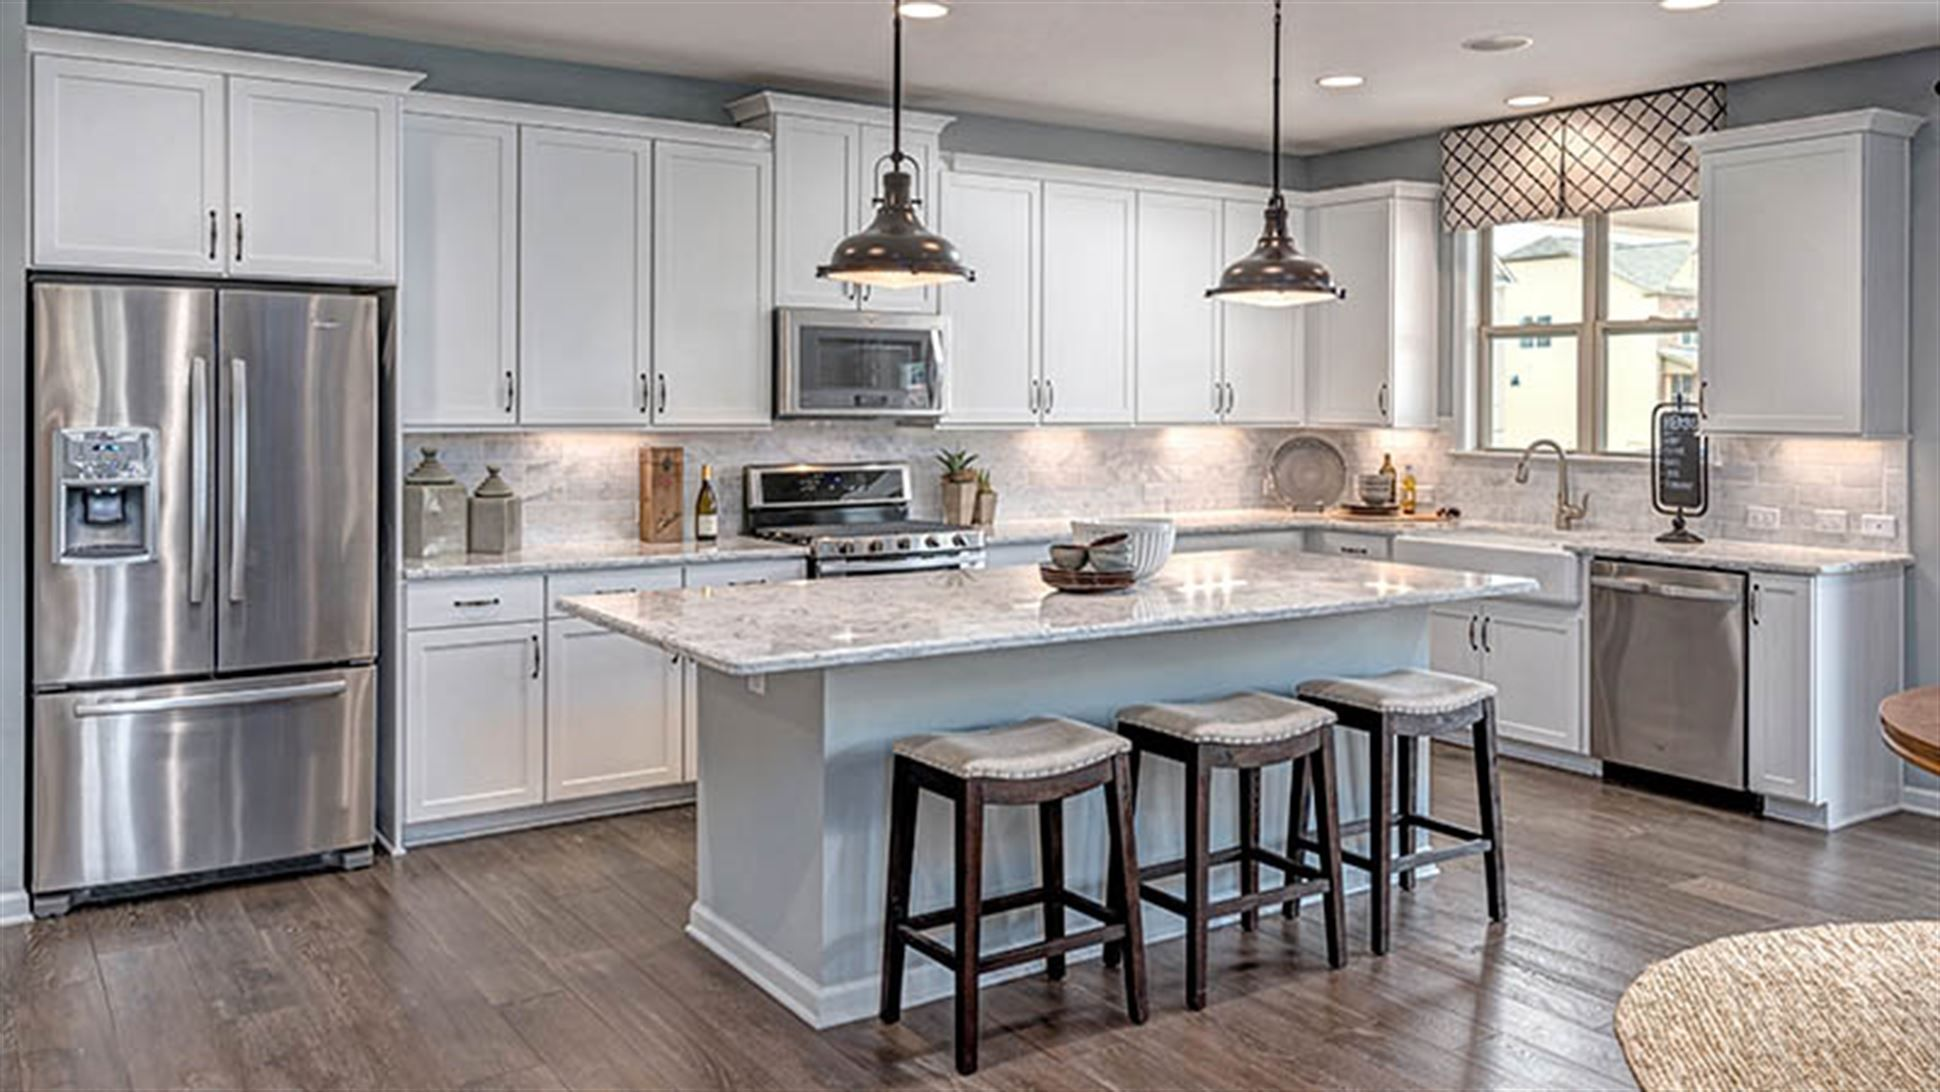 CalAtlantic Homes East Highlands community in Lilburn, GA